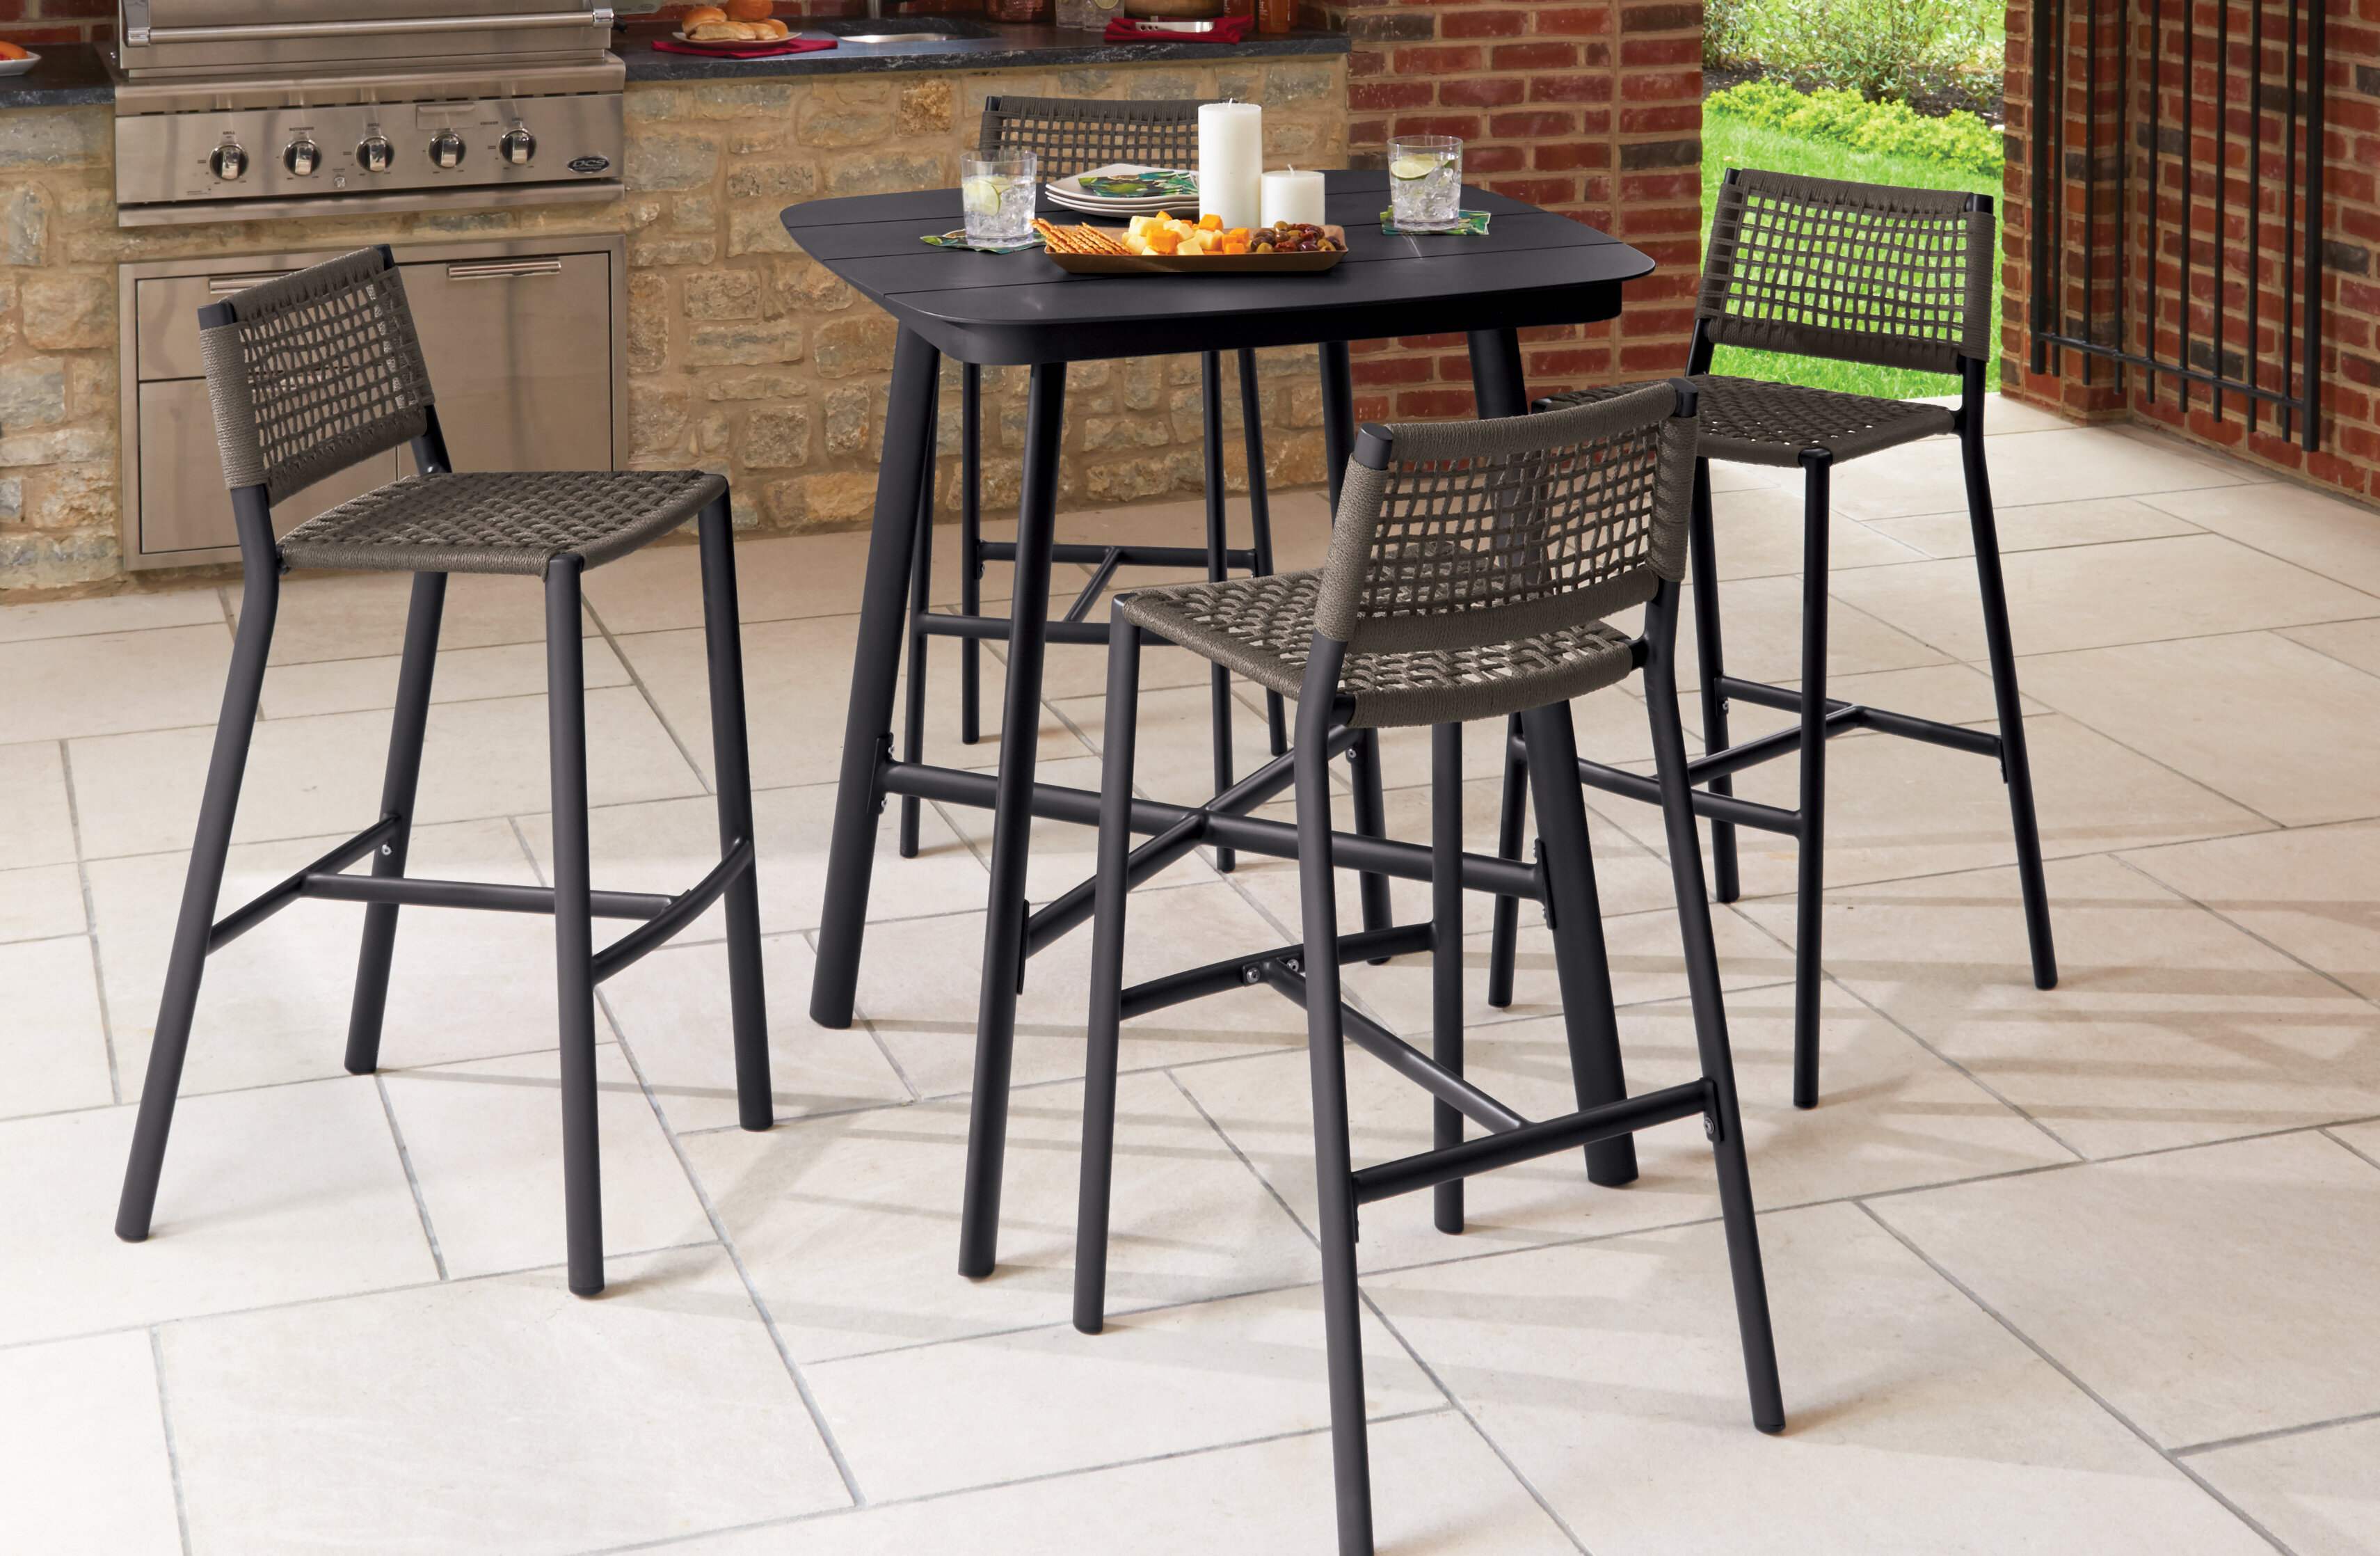 Small Tropical Patio Dining Sets You Ll Love In 2021 Wayfair